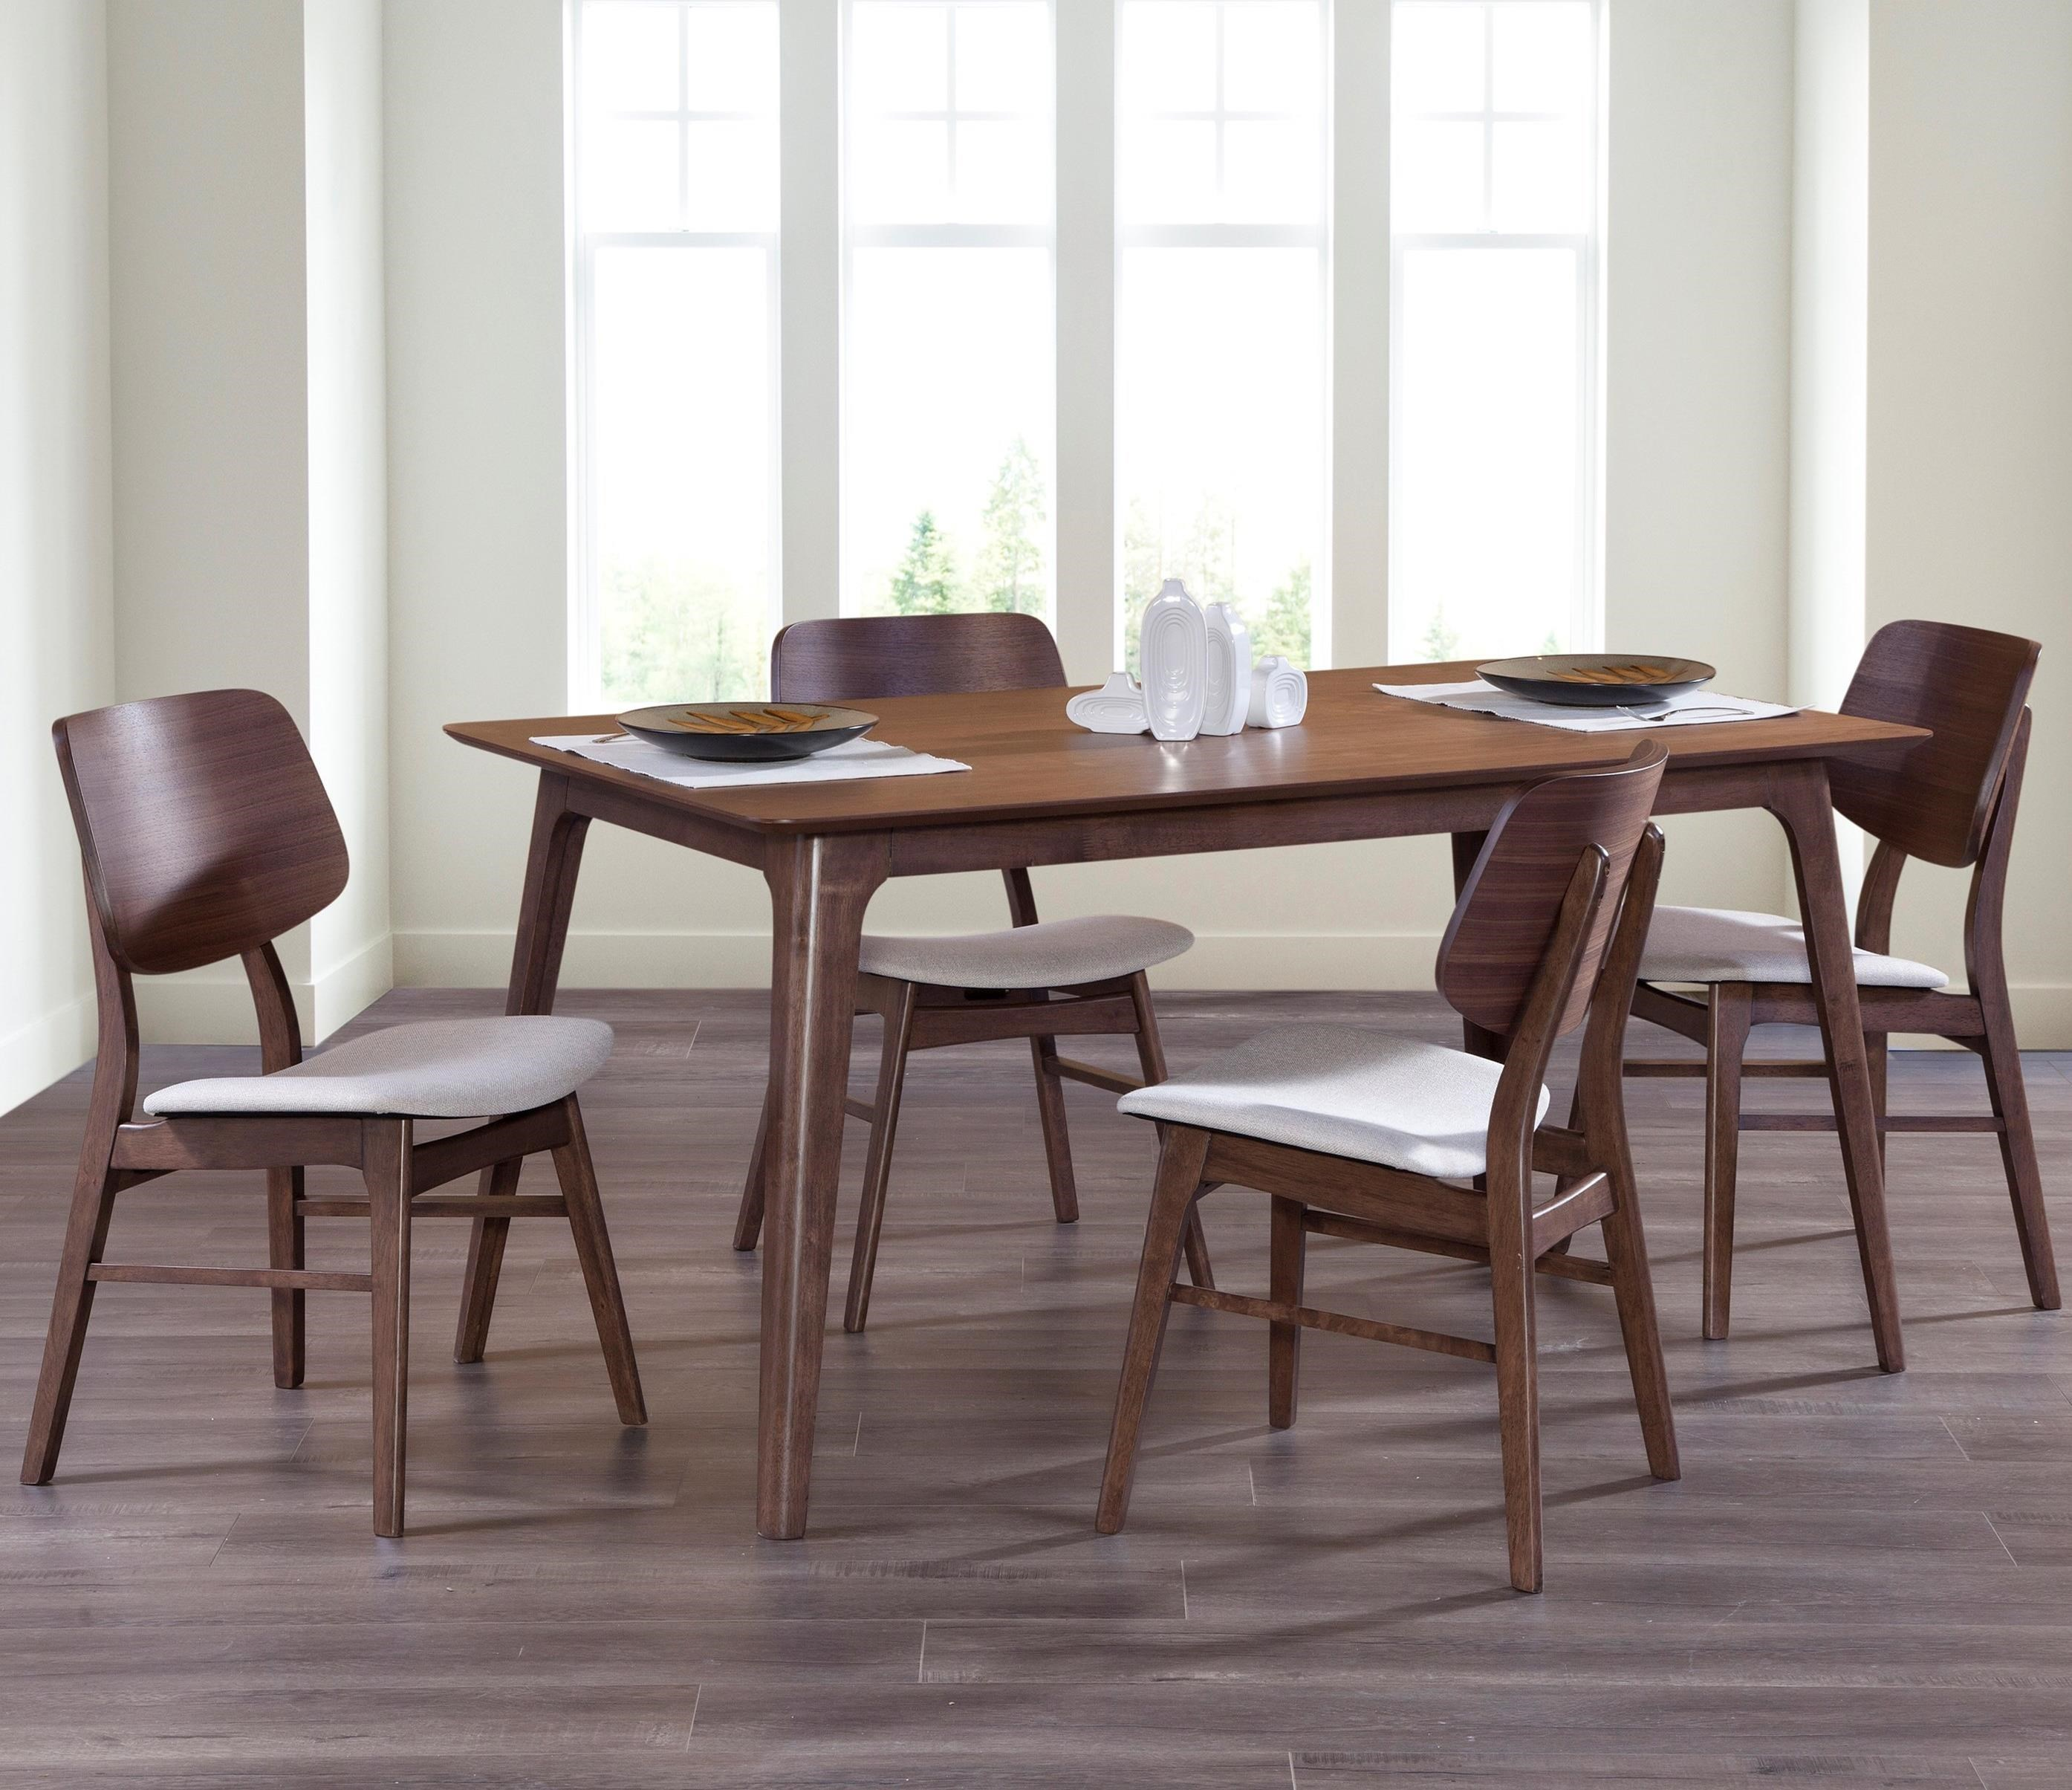 New Classic Furniture Oscar D1651 11 20 5 Piece Mid Century Modern Dining Set With 60 Rectangle Table Del Sol Furniture Dining 5 Piece Sets